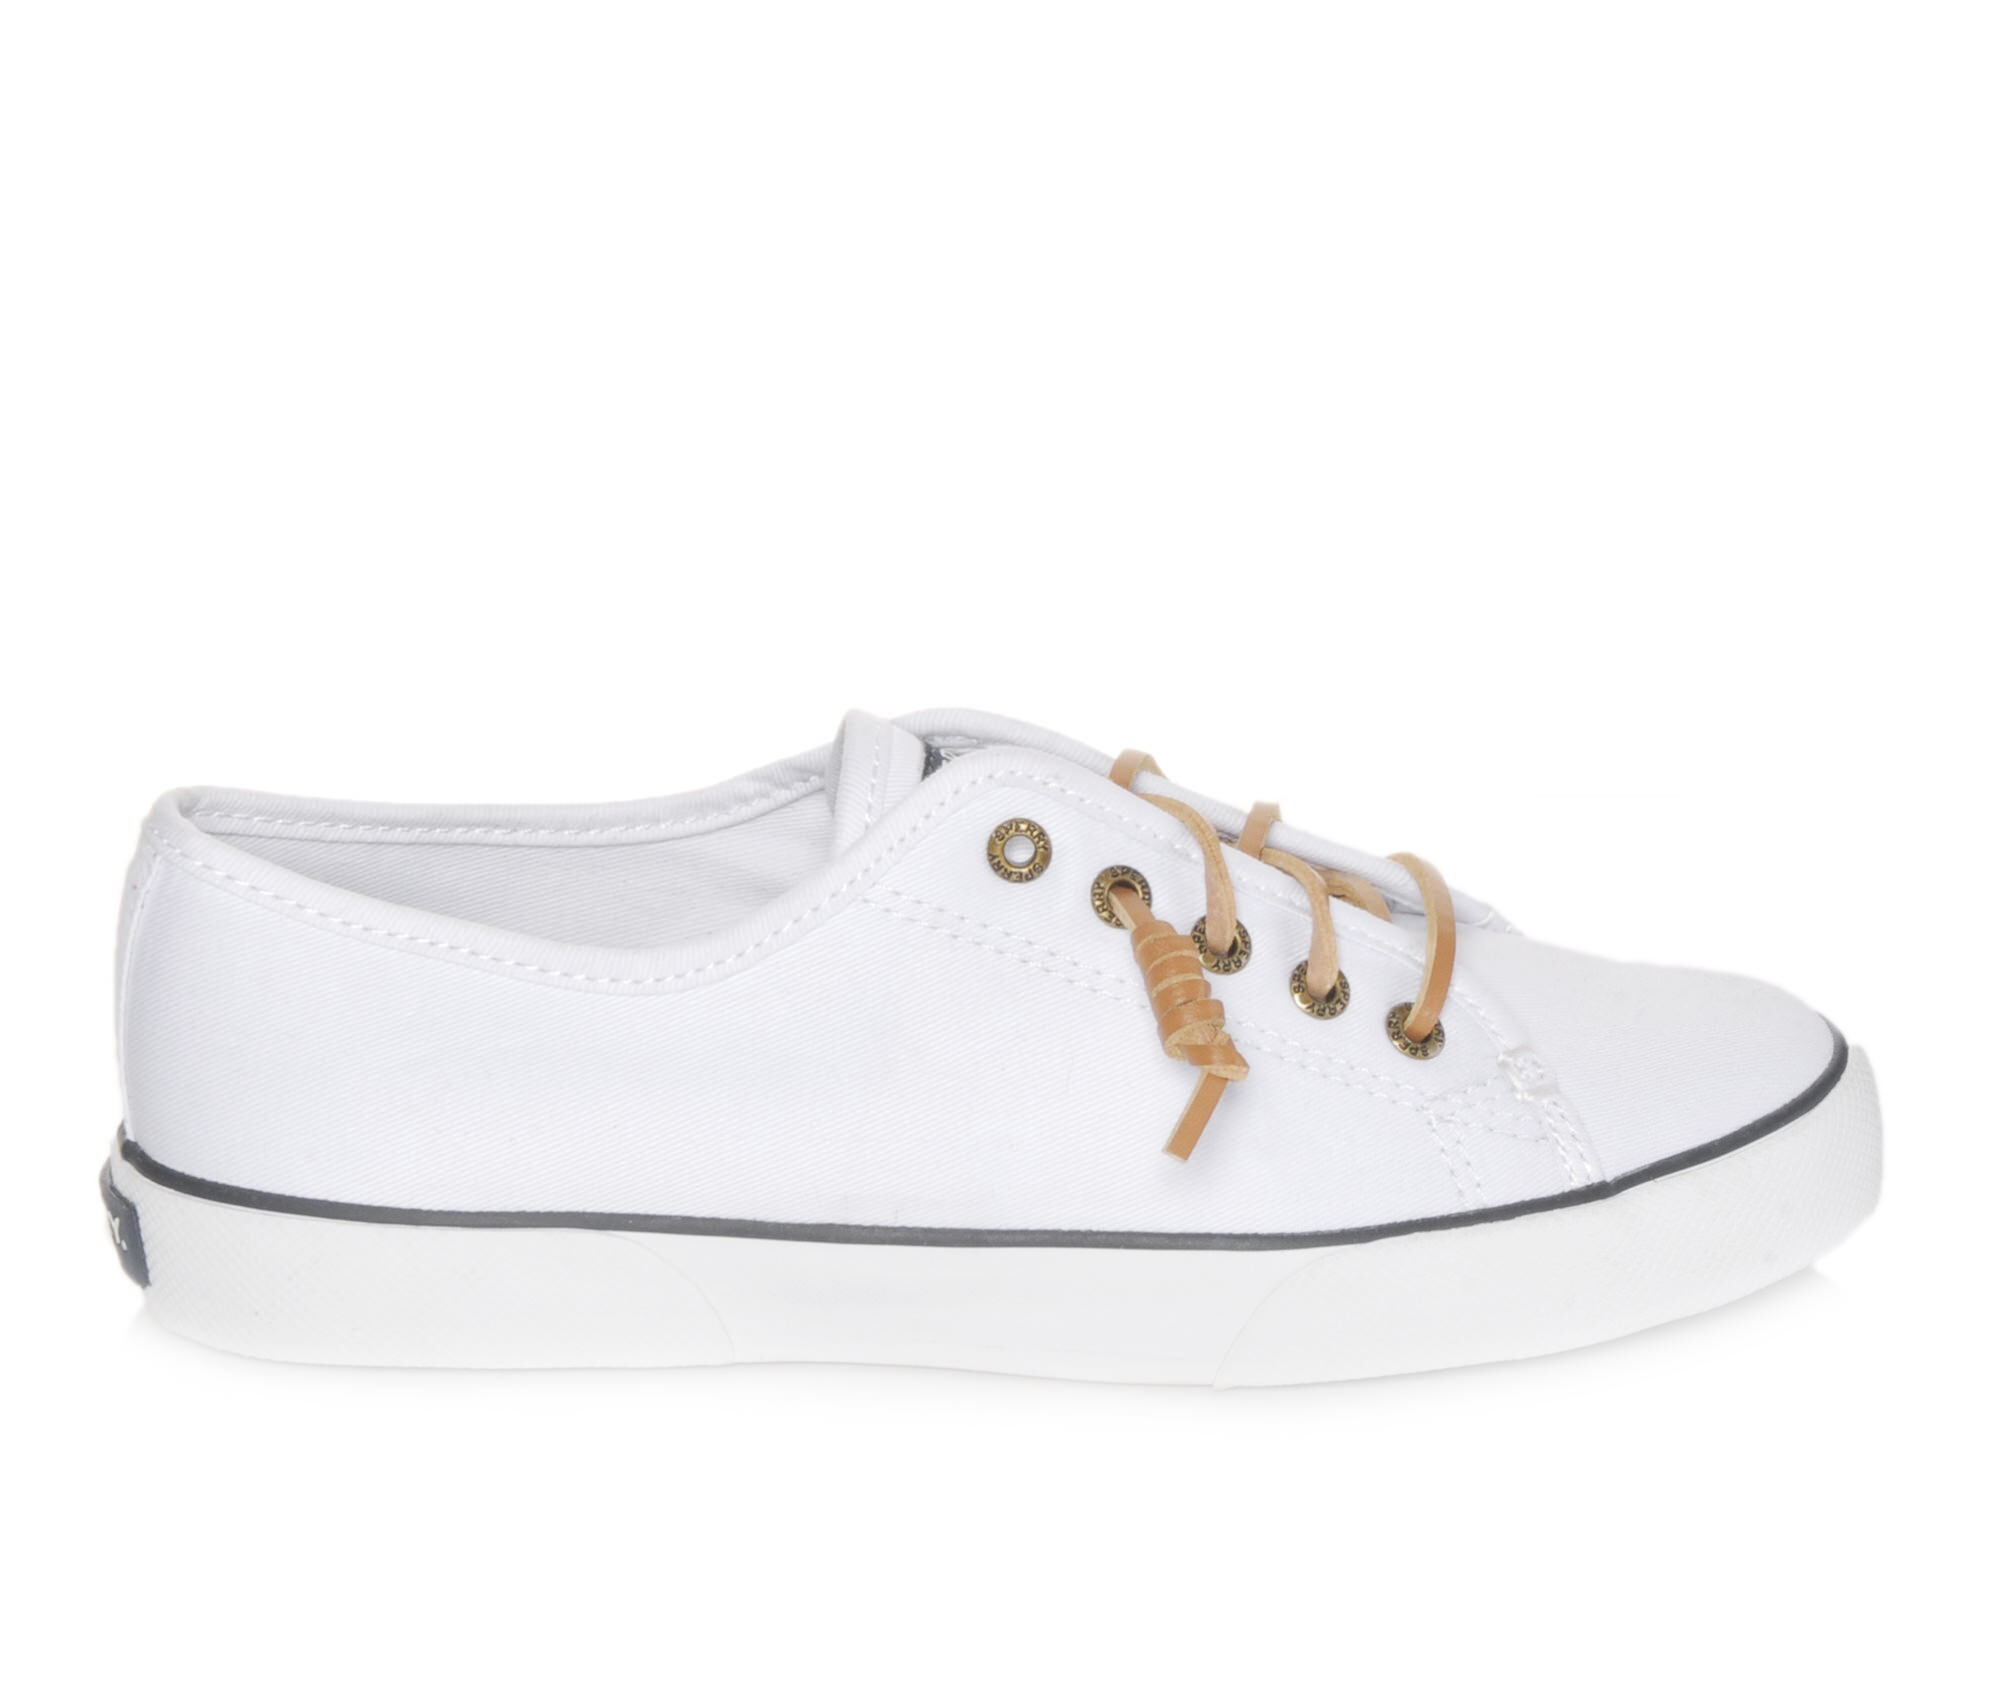 Women's Sperry Pier View Sneakers White